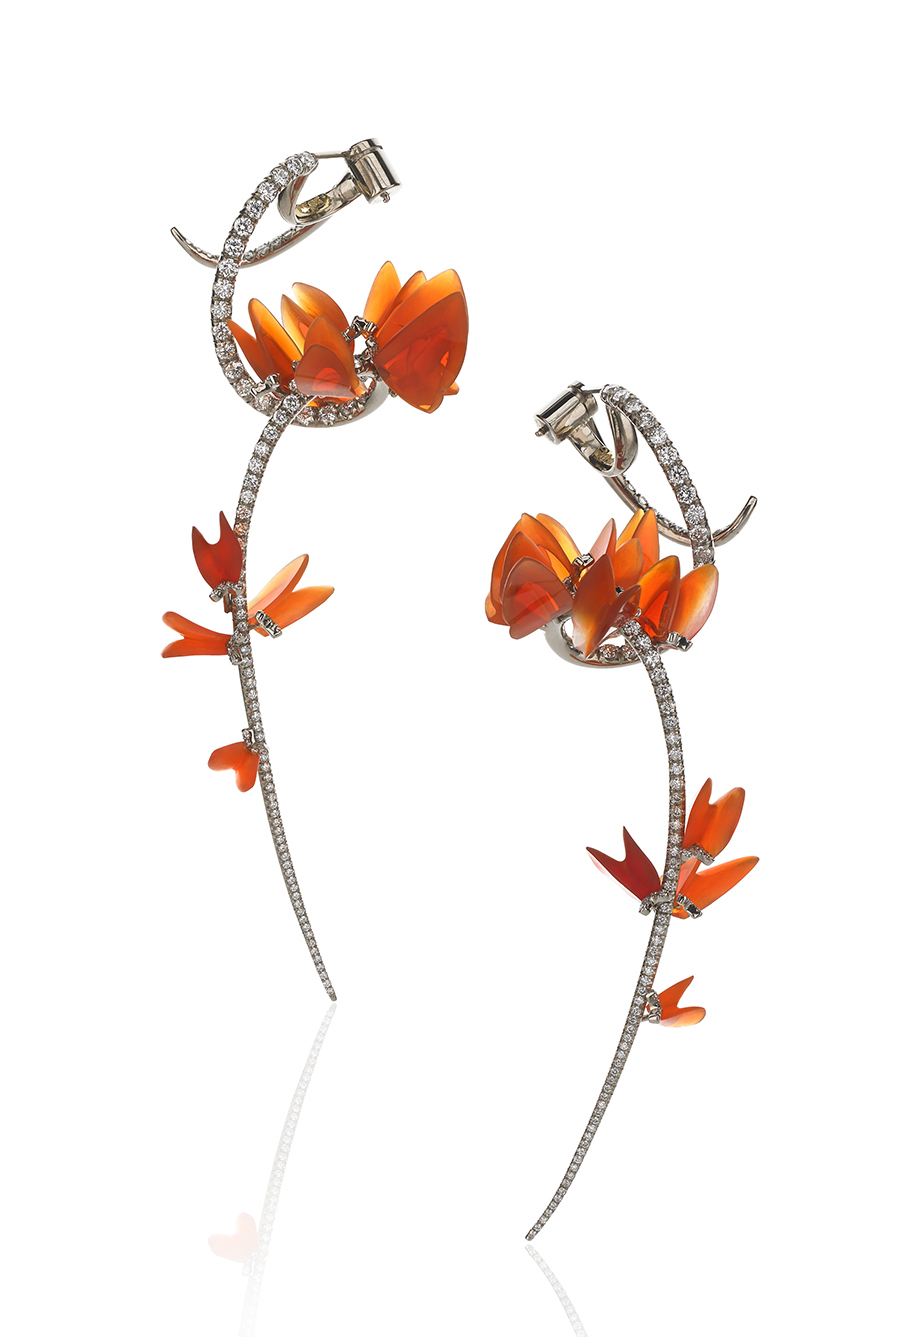 "Editors' Choice: Evening Wear Gregore Joailliers Santa Barbara, CA 18K white gold ""Sometime This Spring"" earrings featuring Mexican fire Opals (68.88 ctw.) accented with round Diamonds (2.19 ctw.)."